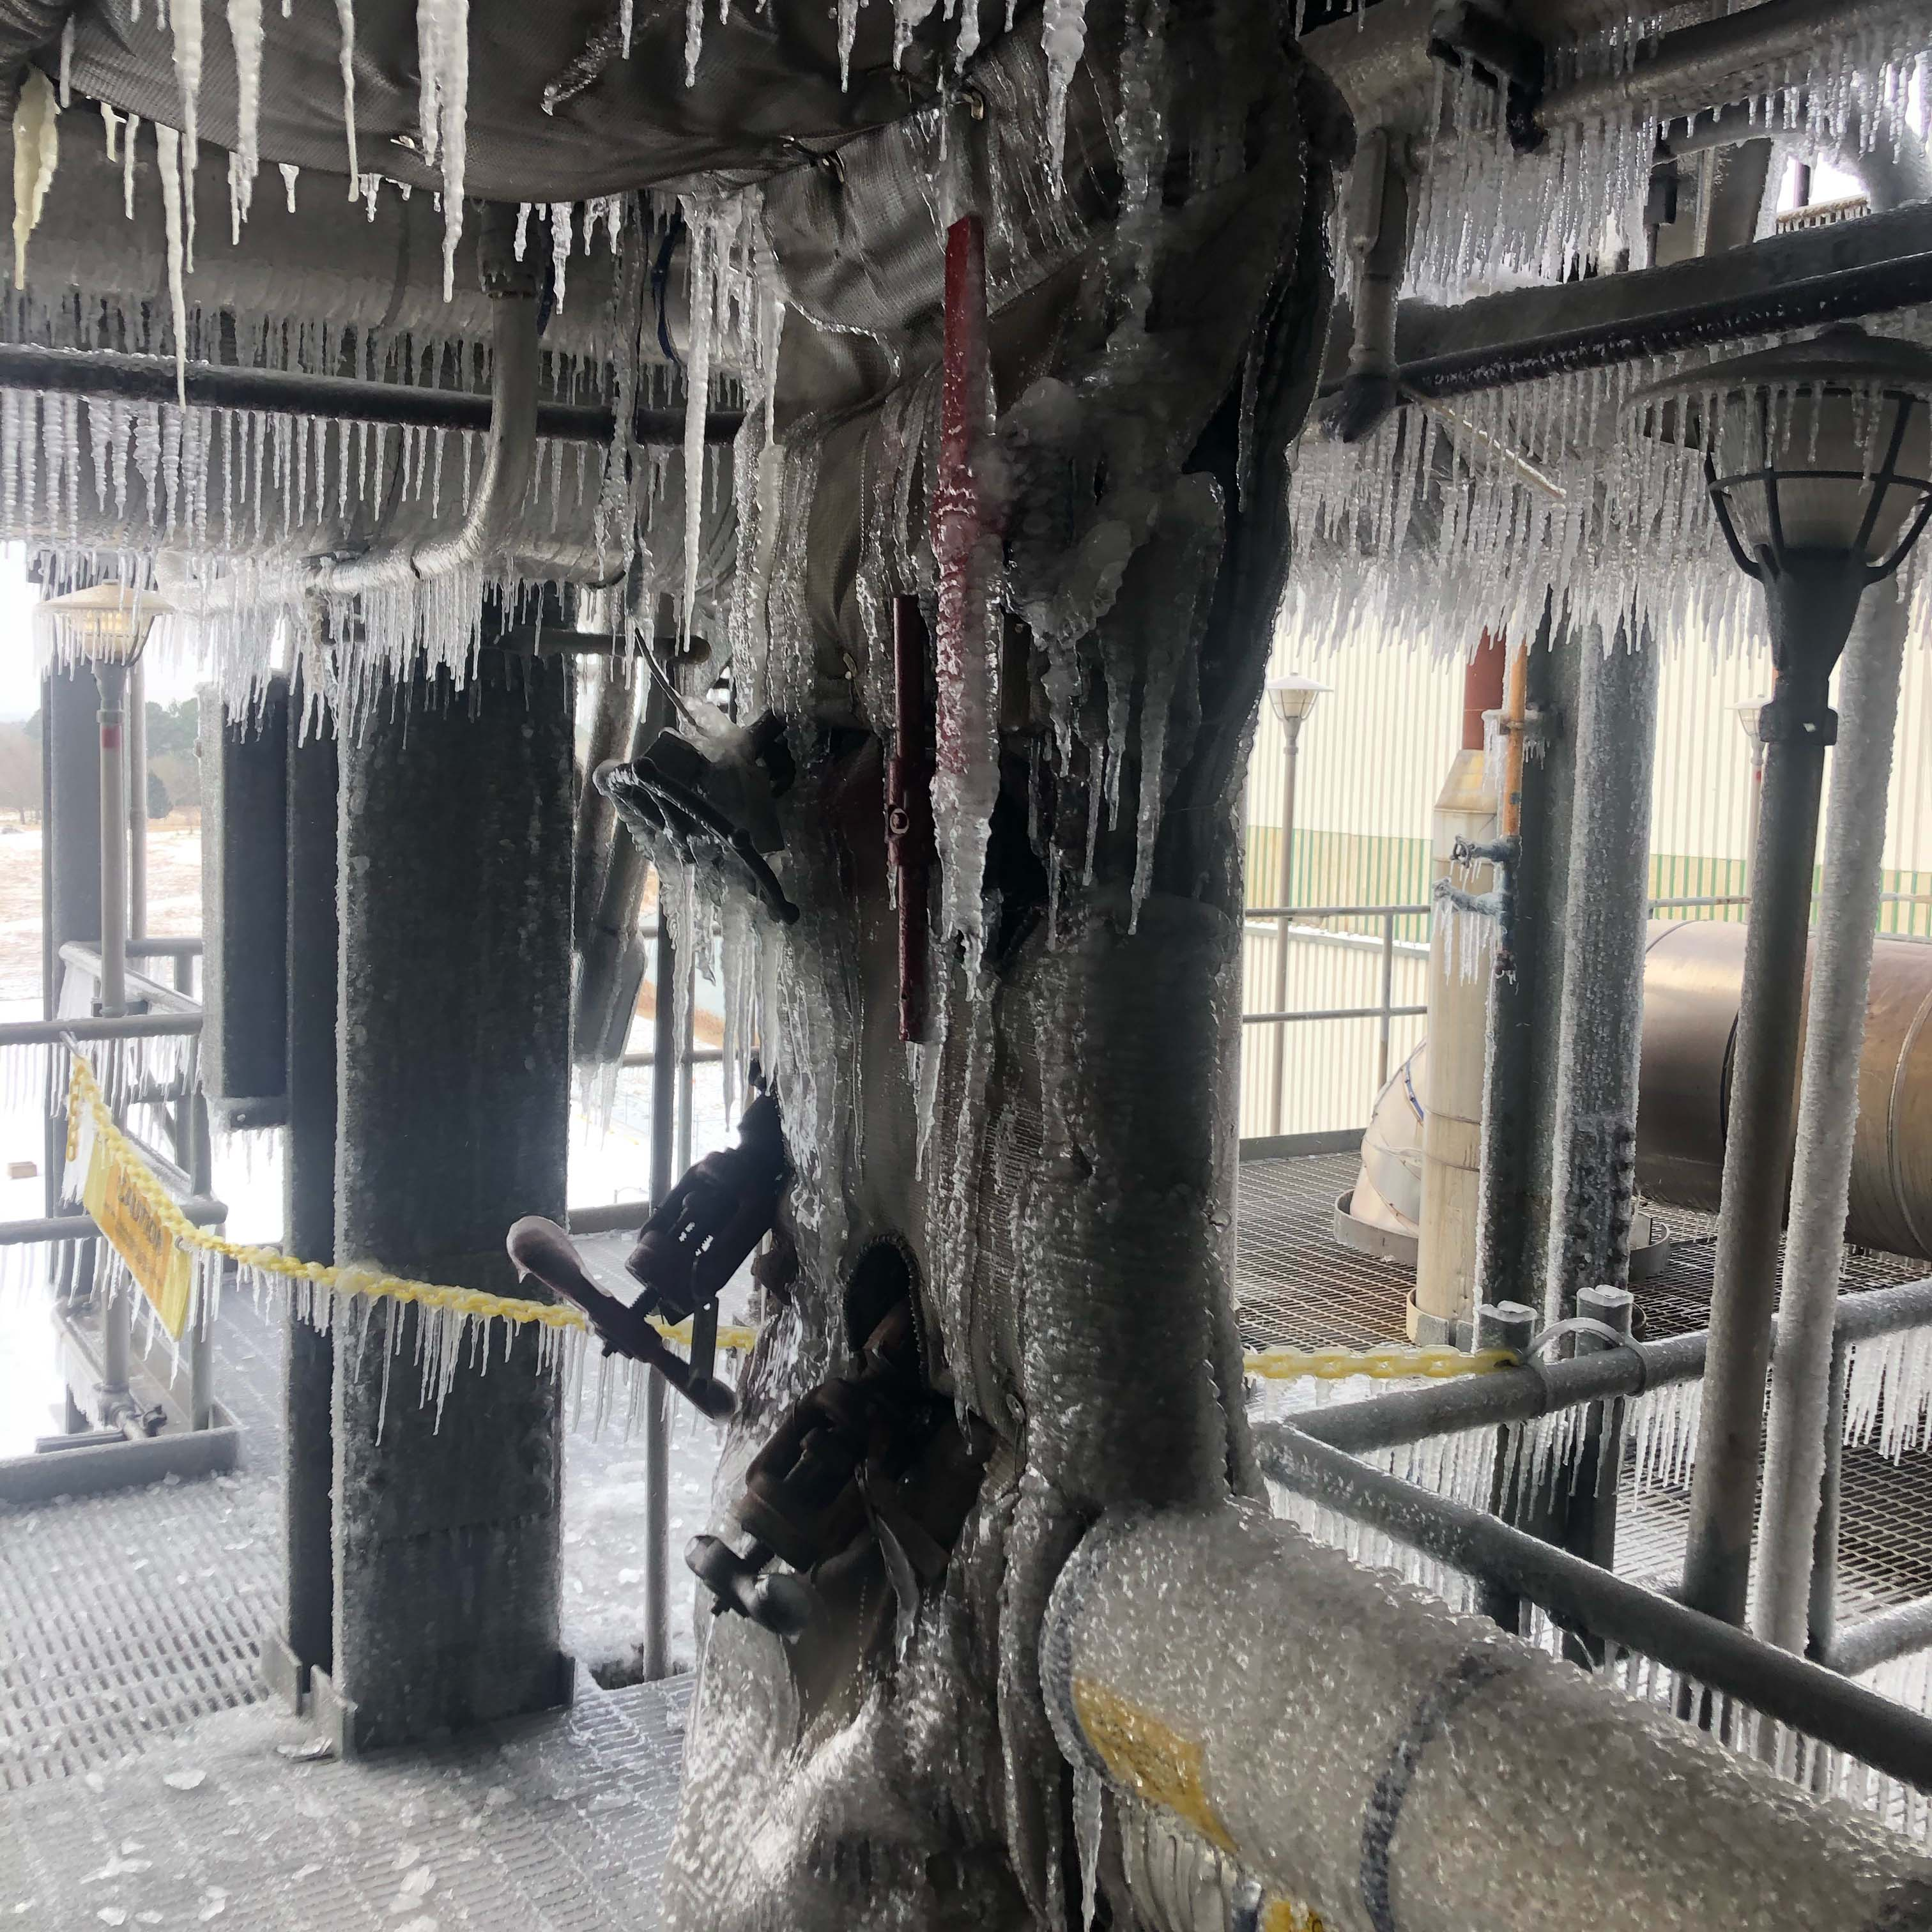 Gas power plants across the state froze, taking 26,000MW, of what was billed as reliable base load power, offline. Photo credit: Entergy